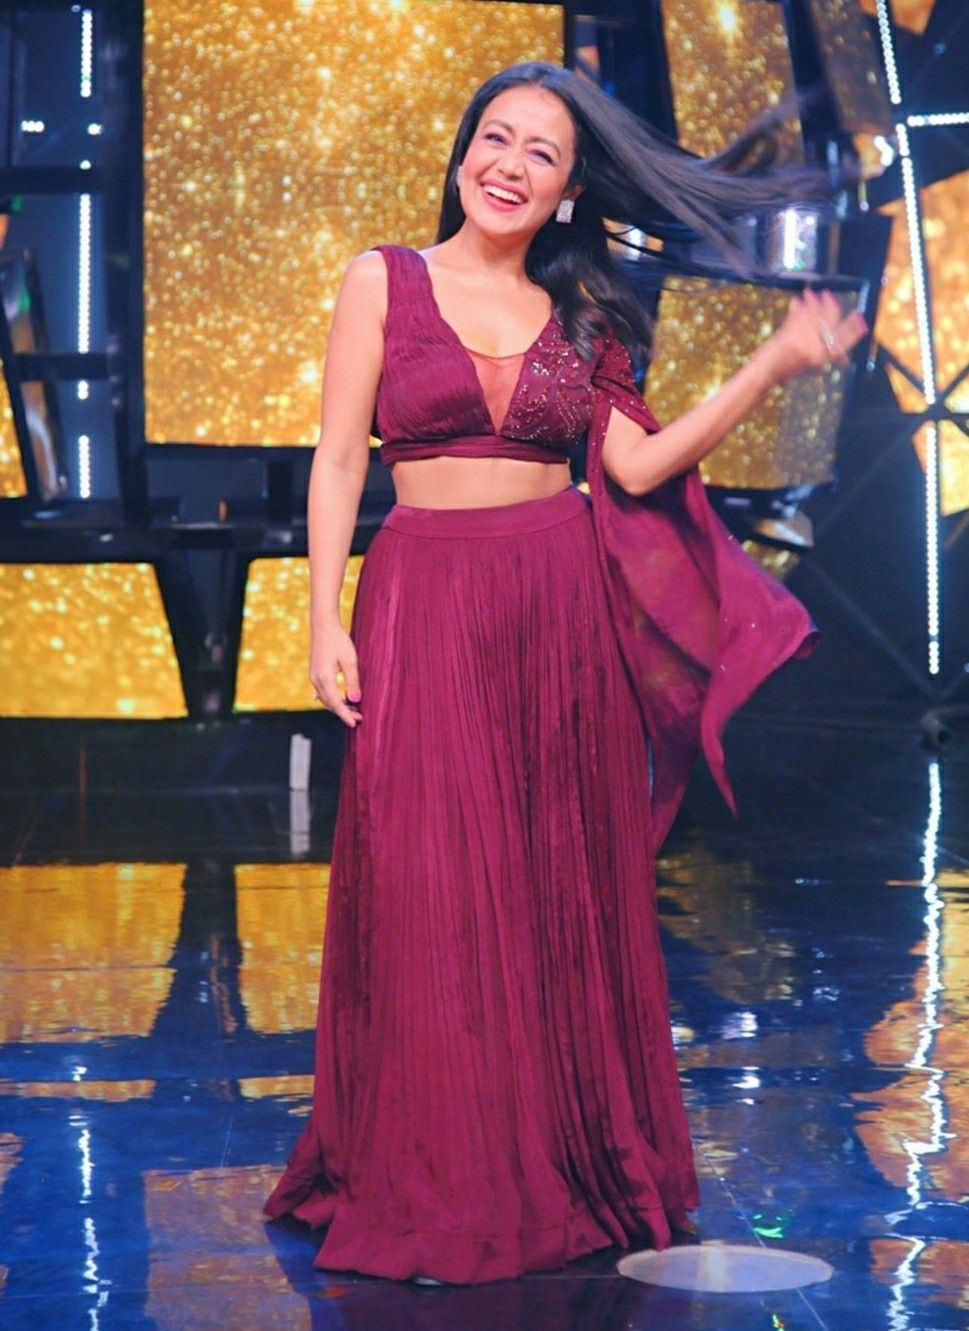 Pin by ℑlma 𝔖aiyad on Singers in 2020 Backless dress